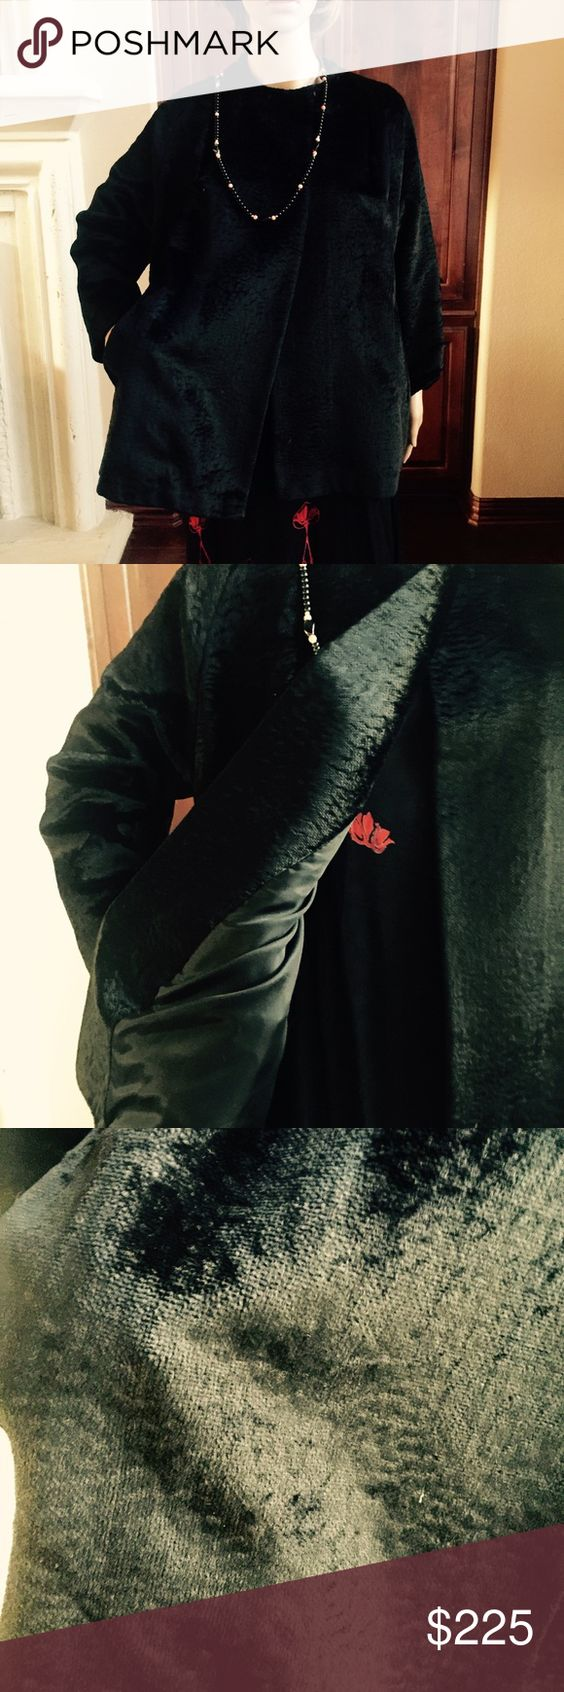 Antique very heavy coat. Feels like silk velvet Very heavy.  Neck has two snaps. Has new lining (shown) at one point which covers name.  Not sure if fur or heavy velvet evening jacket with side pockets. Was in bidding lot with Art Deco cigarette case (sold). Jackets & Coats